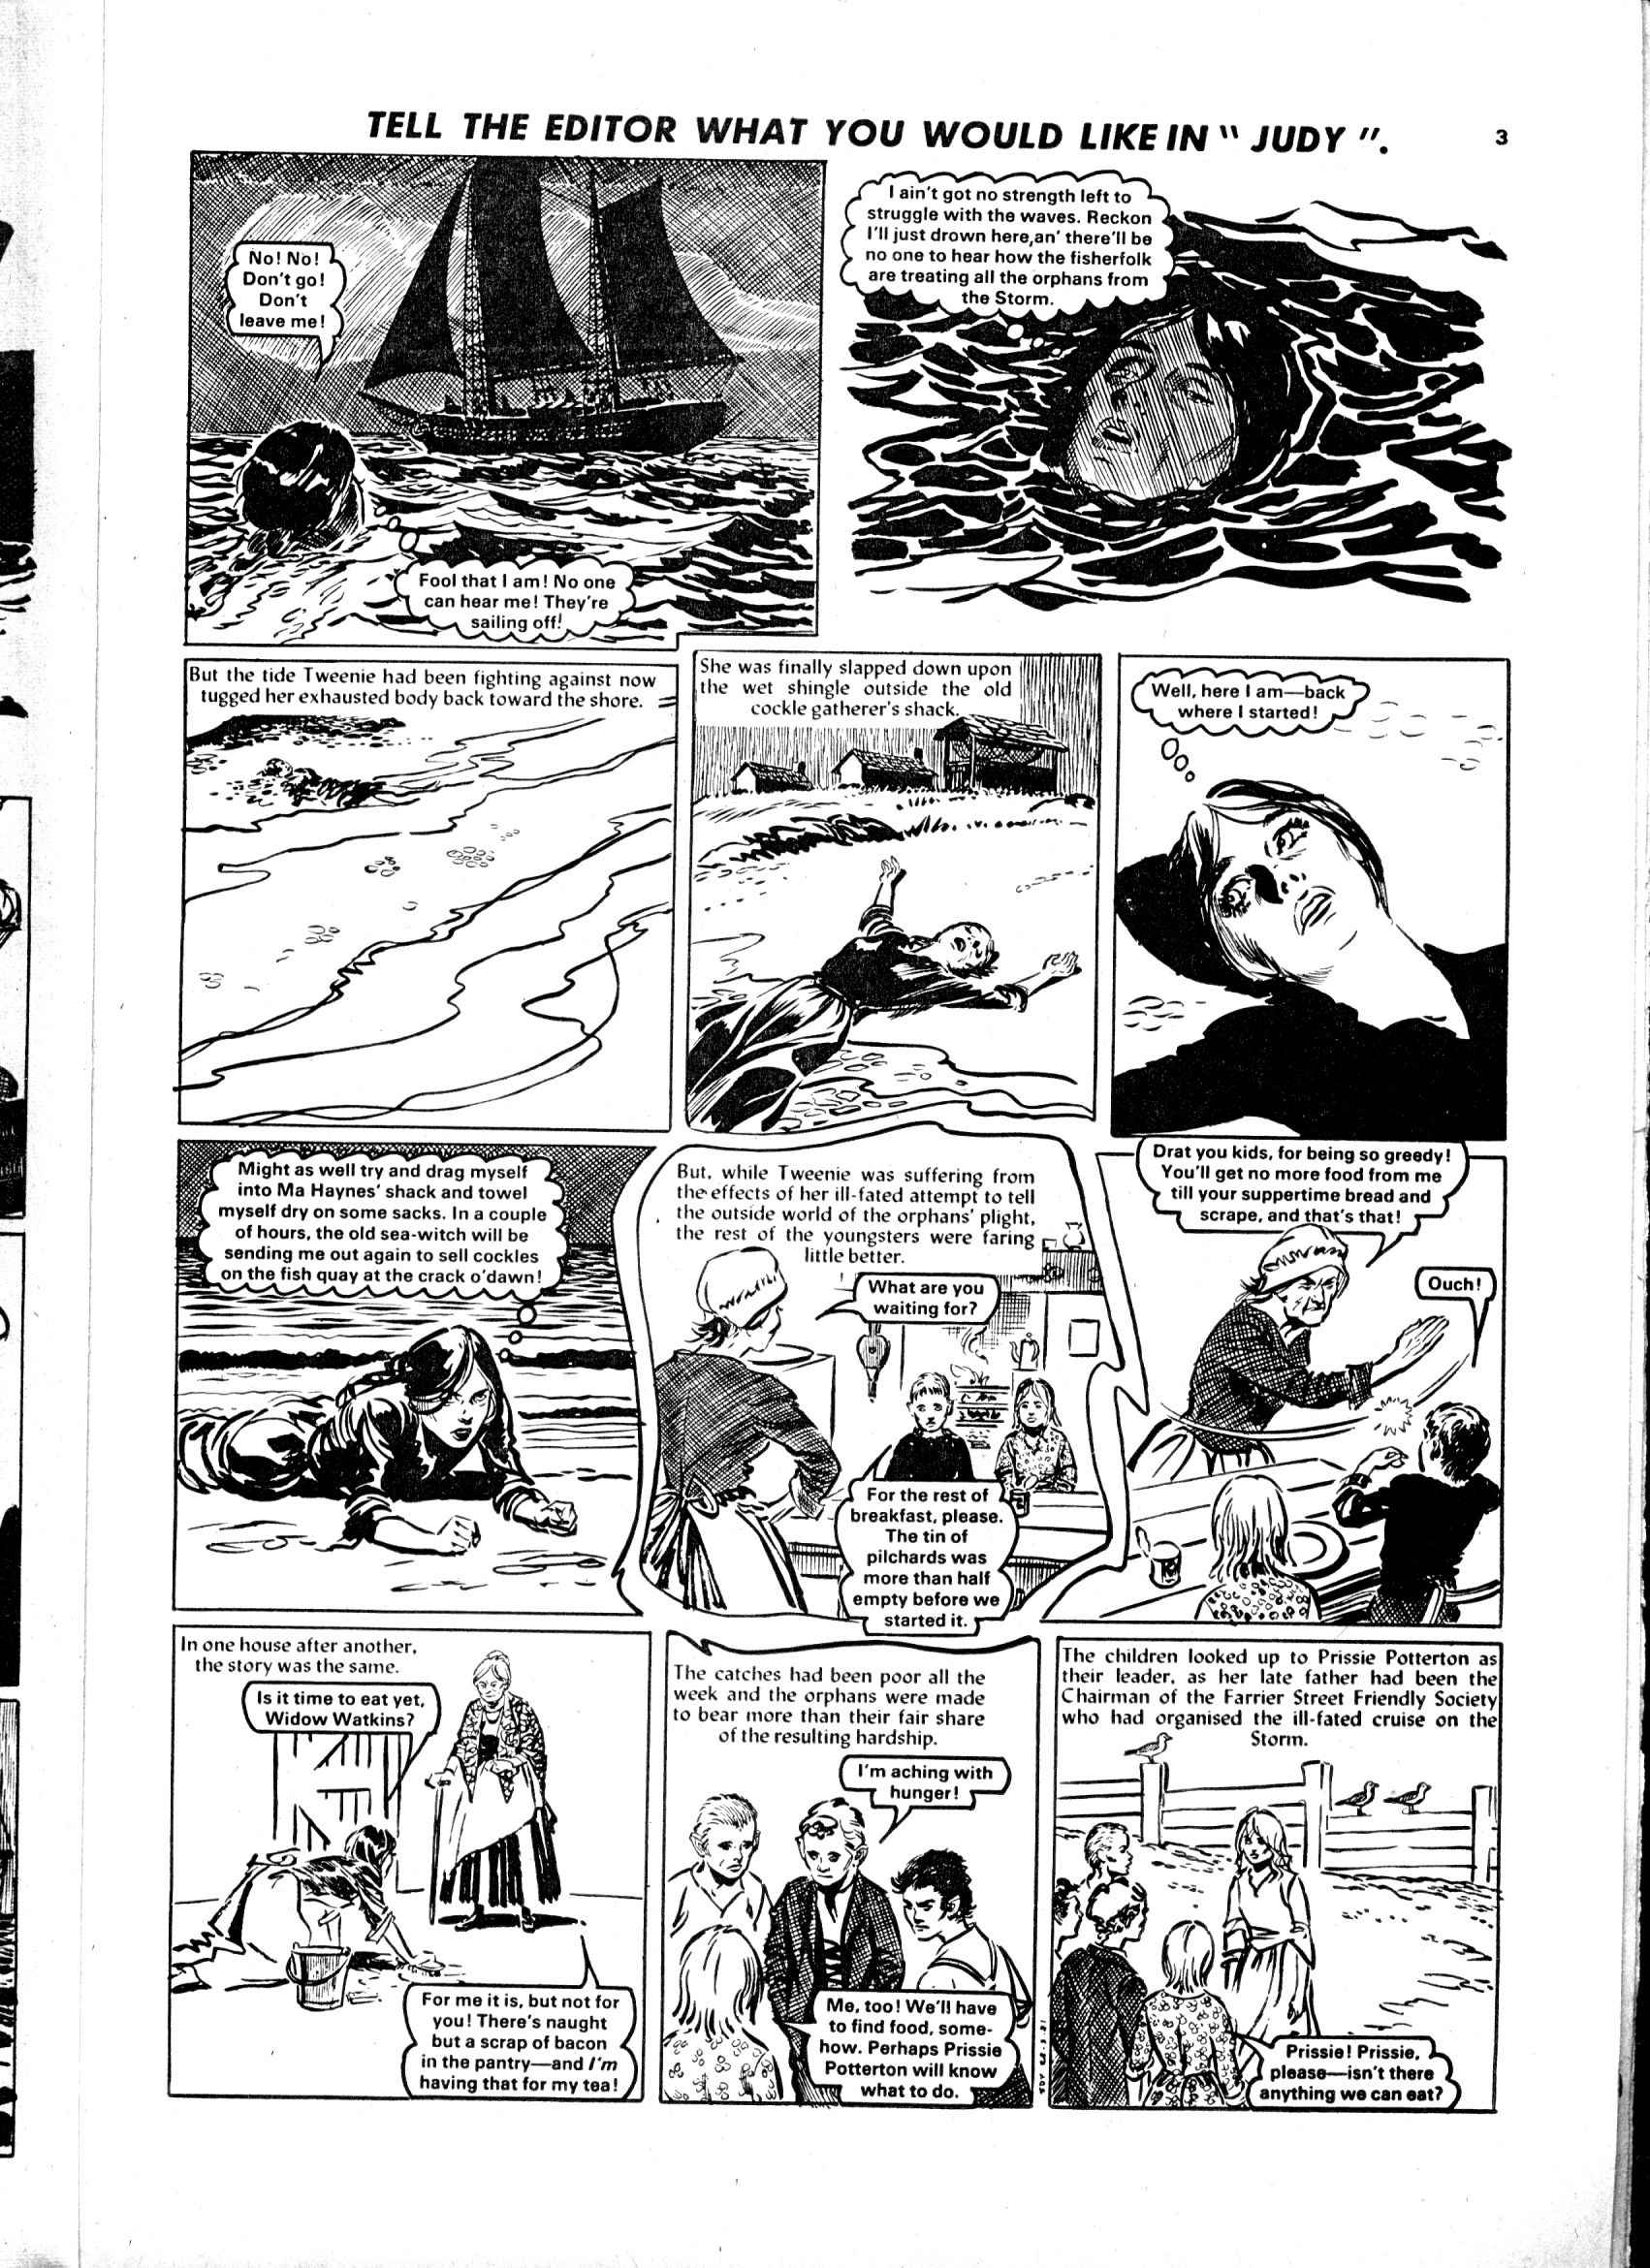 Read online Judy comic -  Issue #1107 - 3